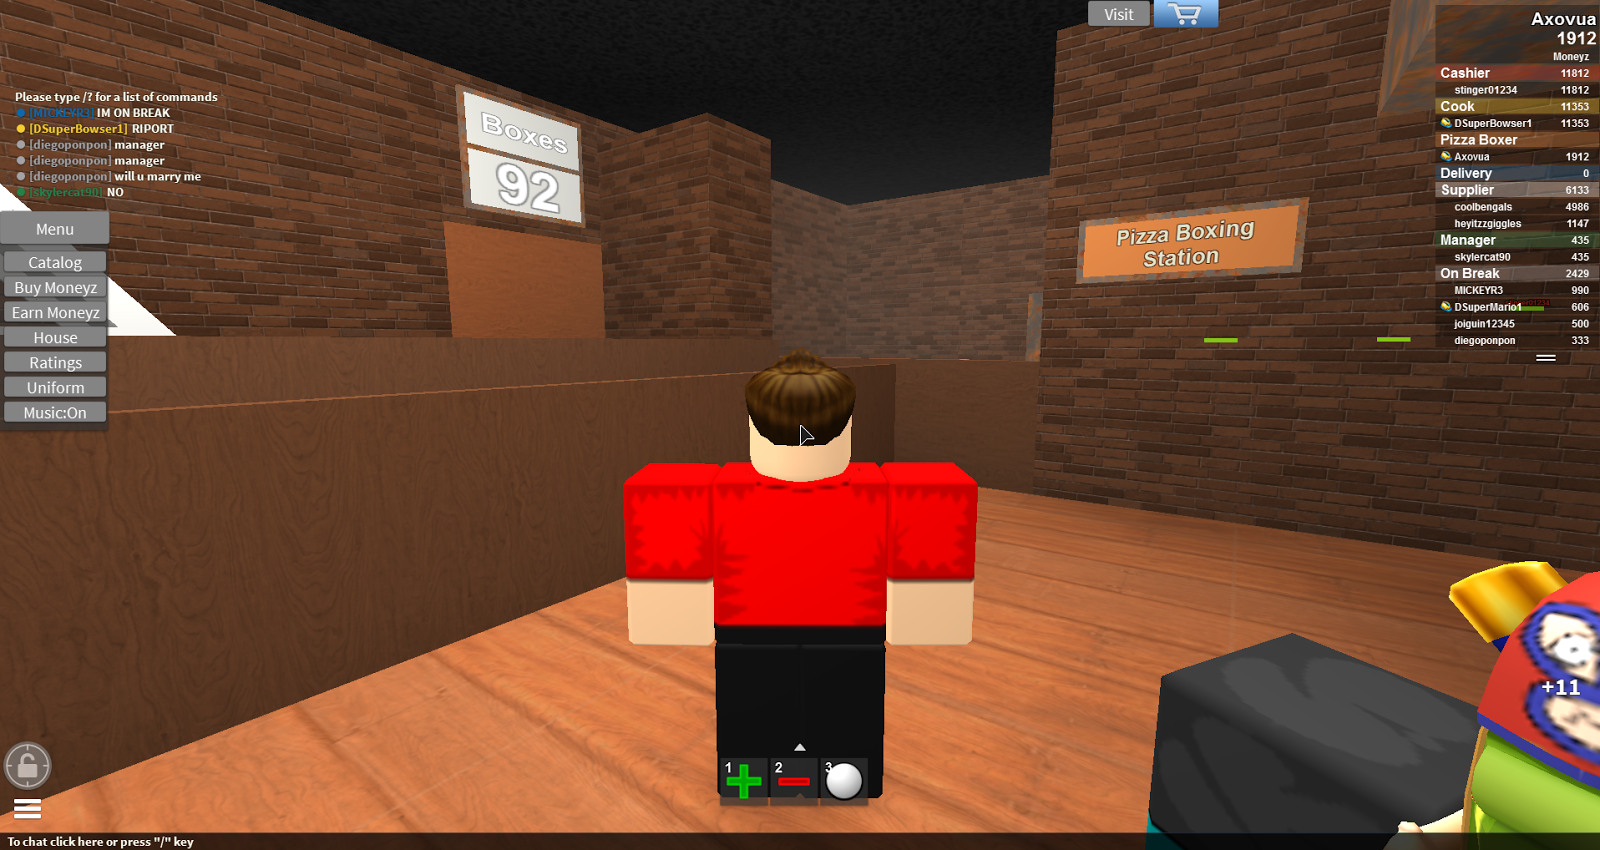 Axovua Game Reviews Work At A Pizza Place Roblox